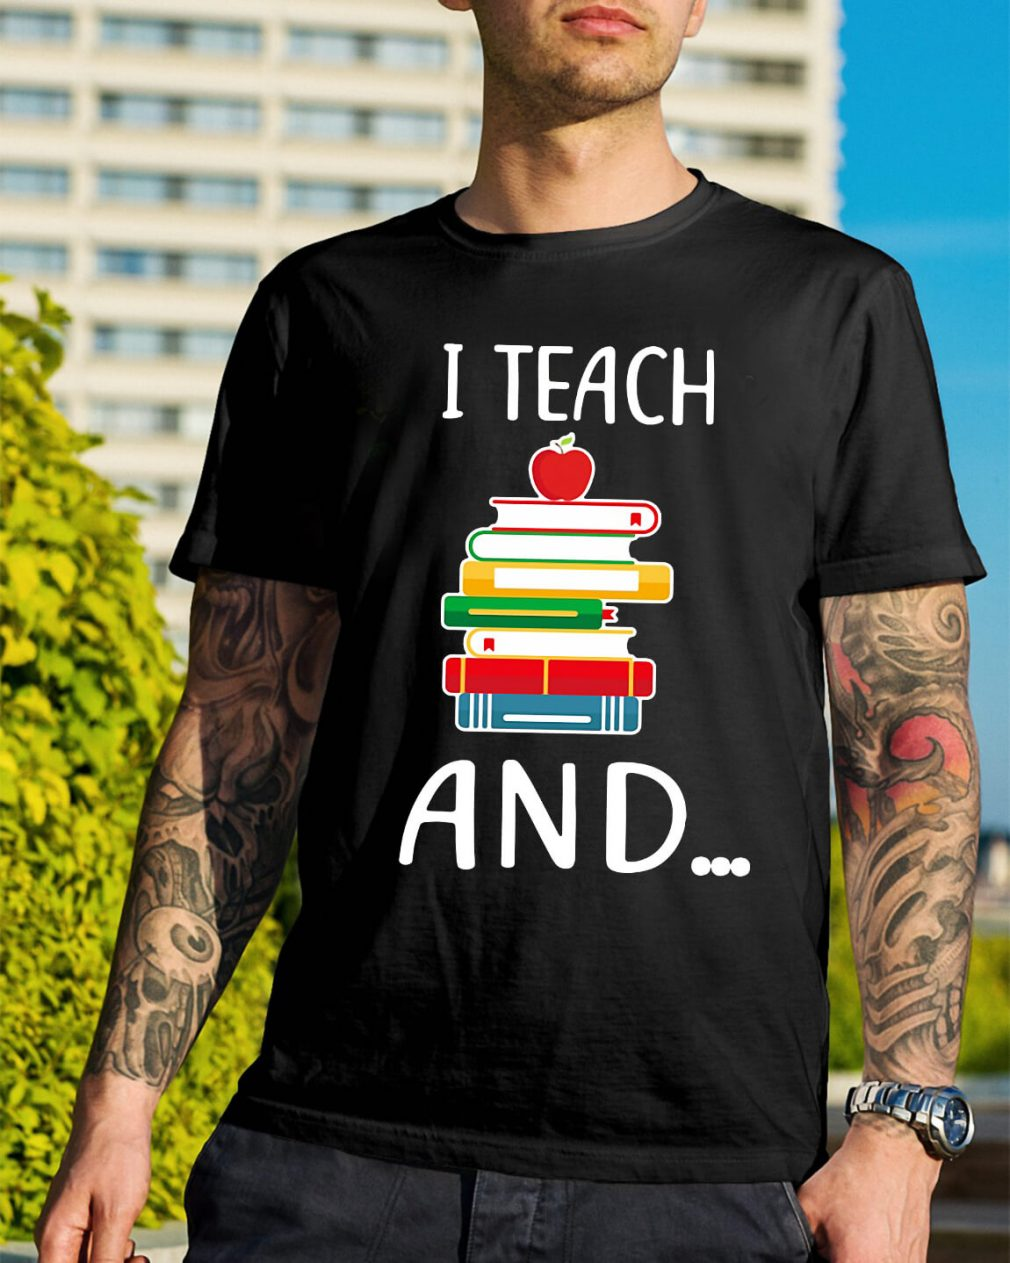 I teach and I'm watching you shirt